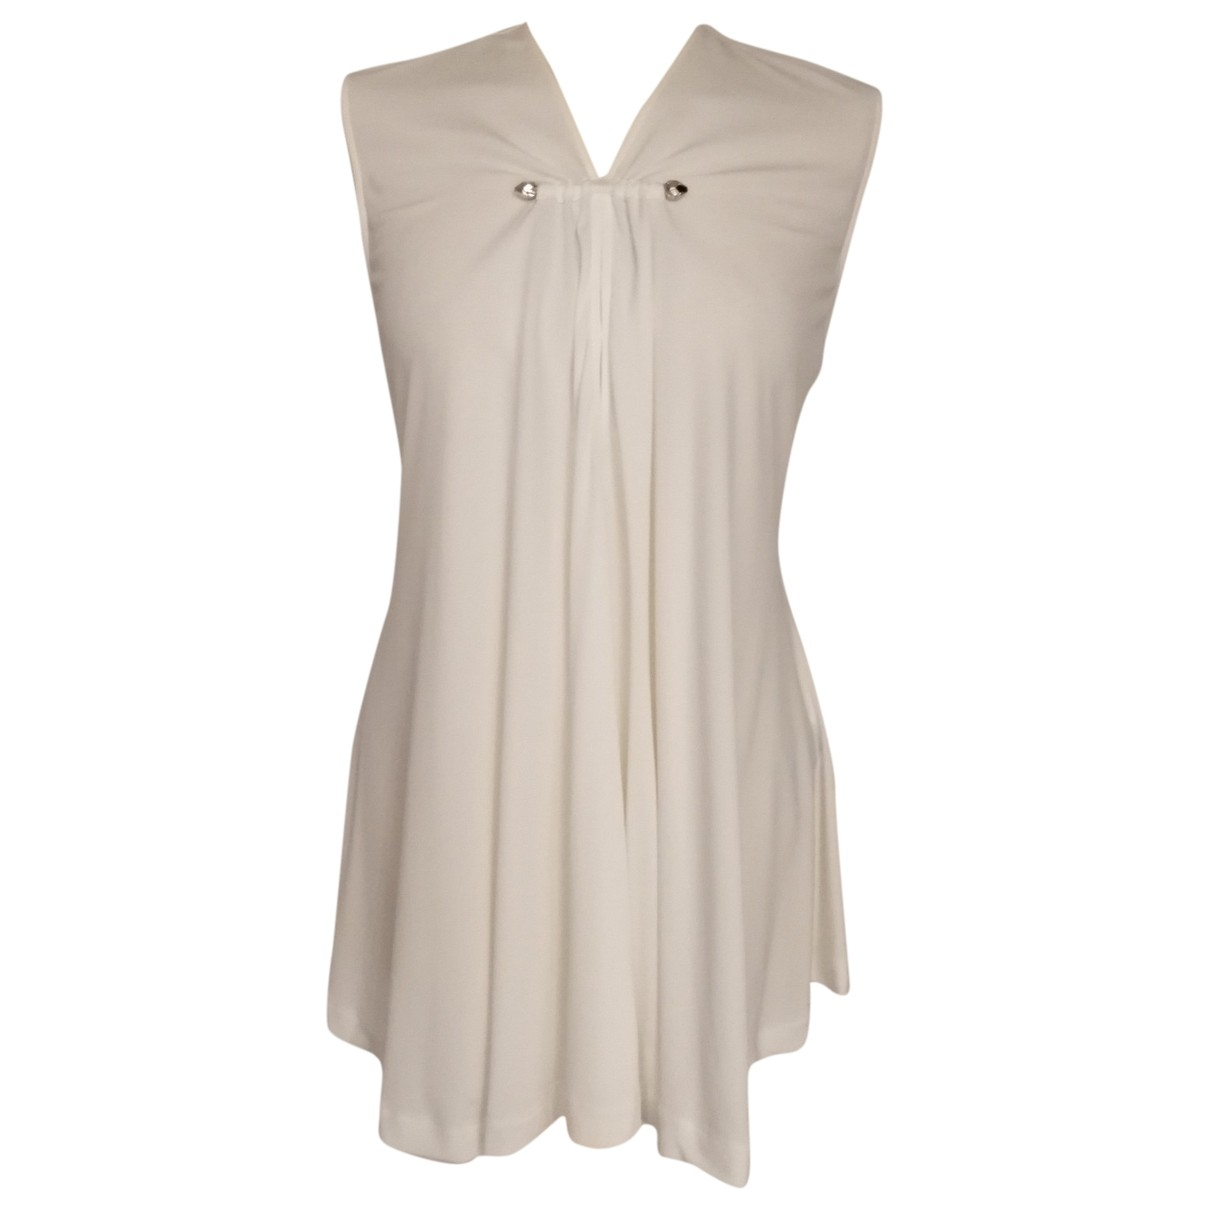 Just Cavalli \N White  top for Women 44 IT